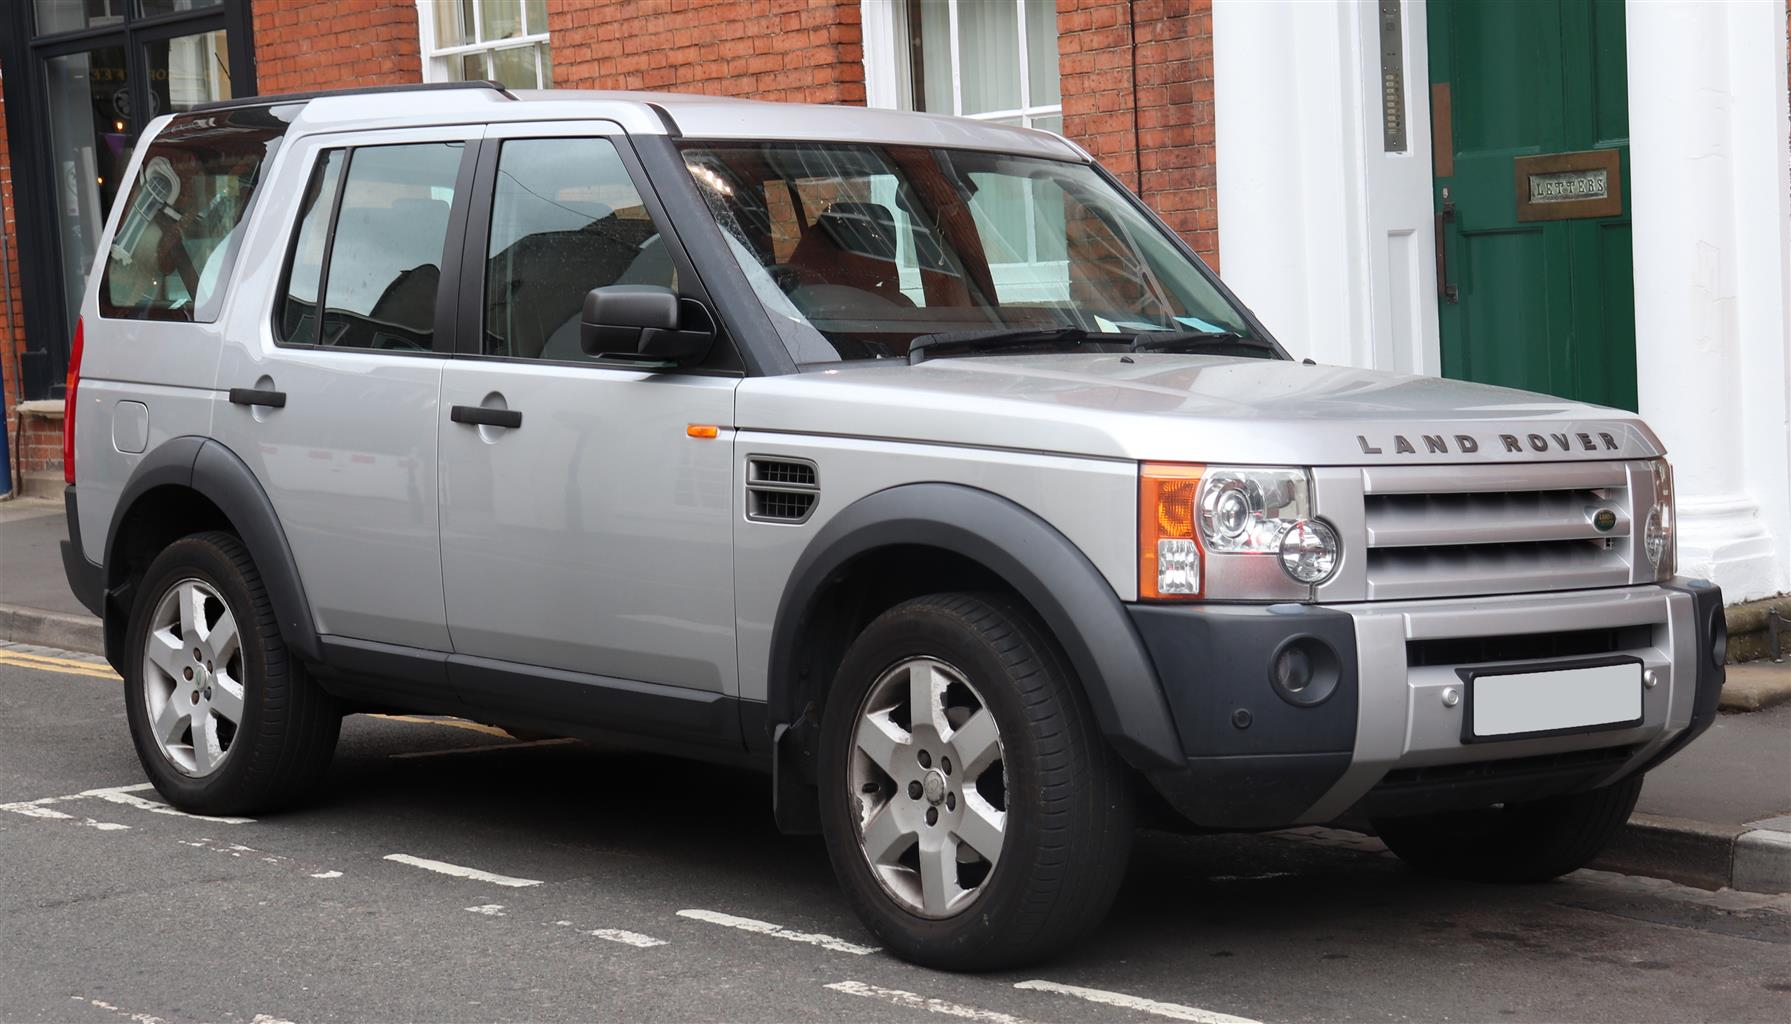 Land Rover Discovery 3 Doors for sale   AUTO EZI